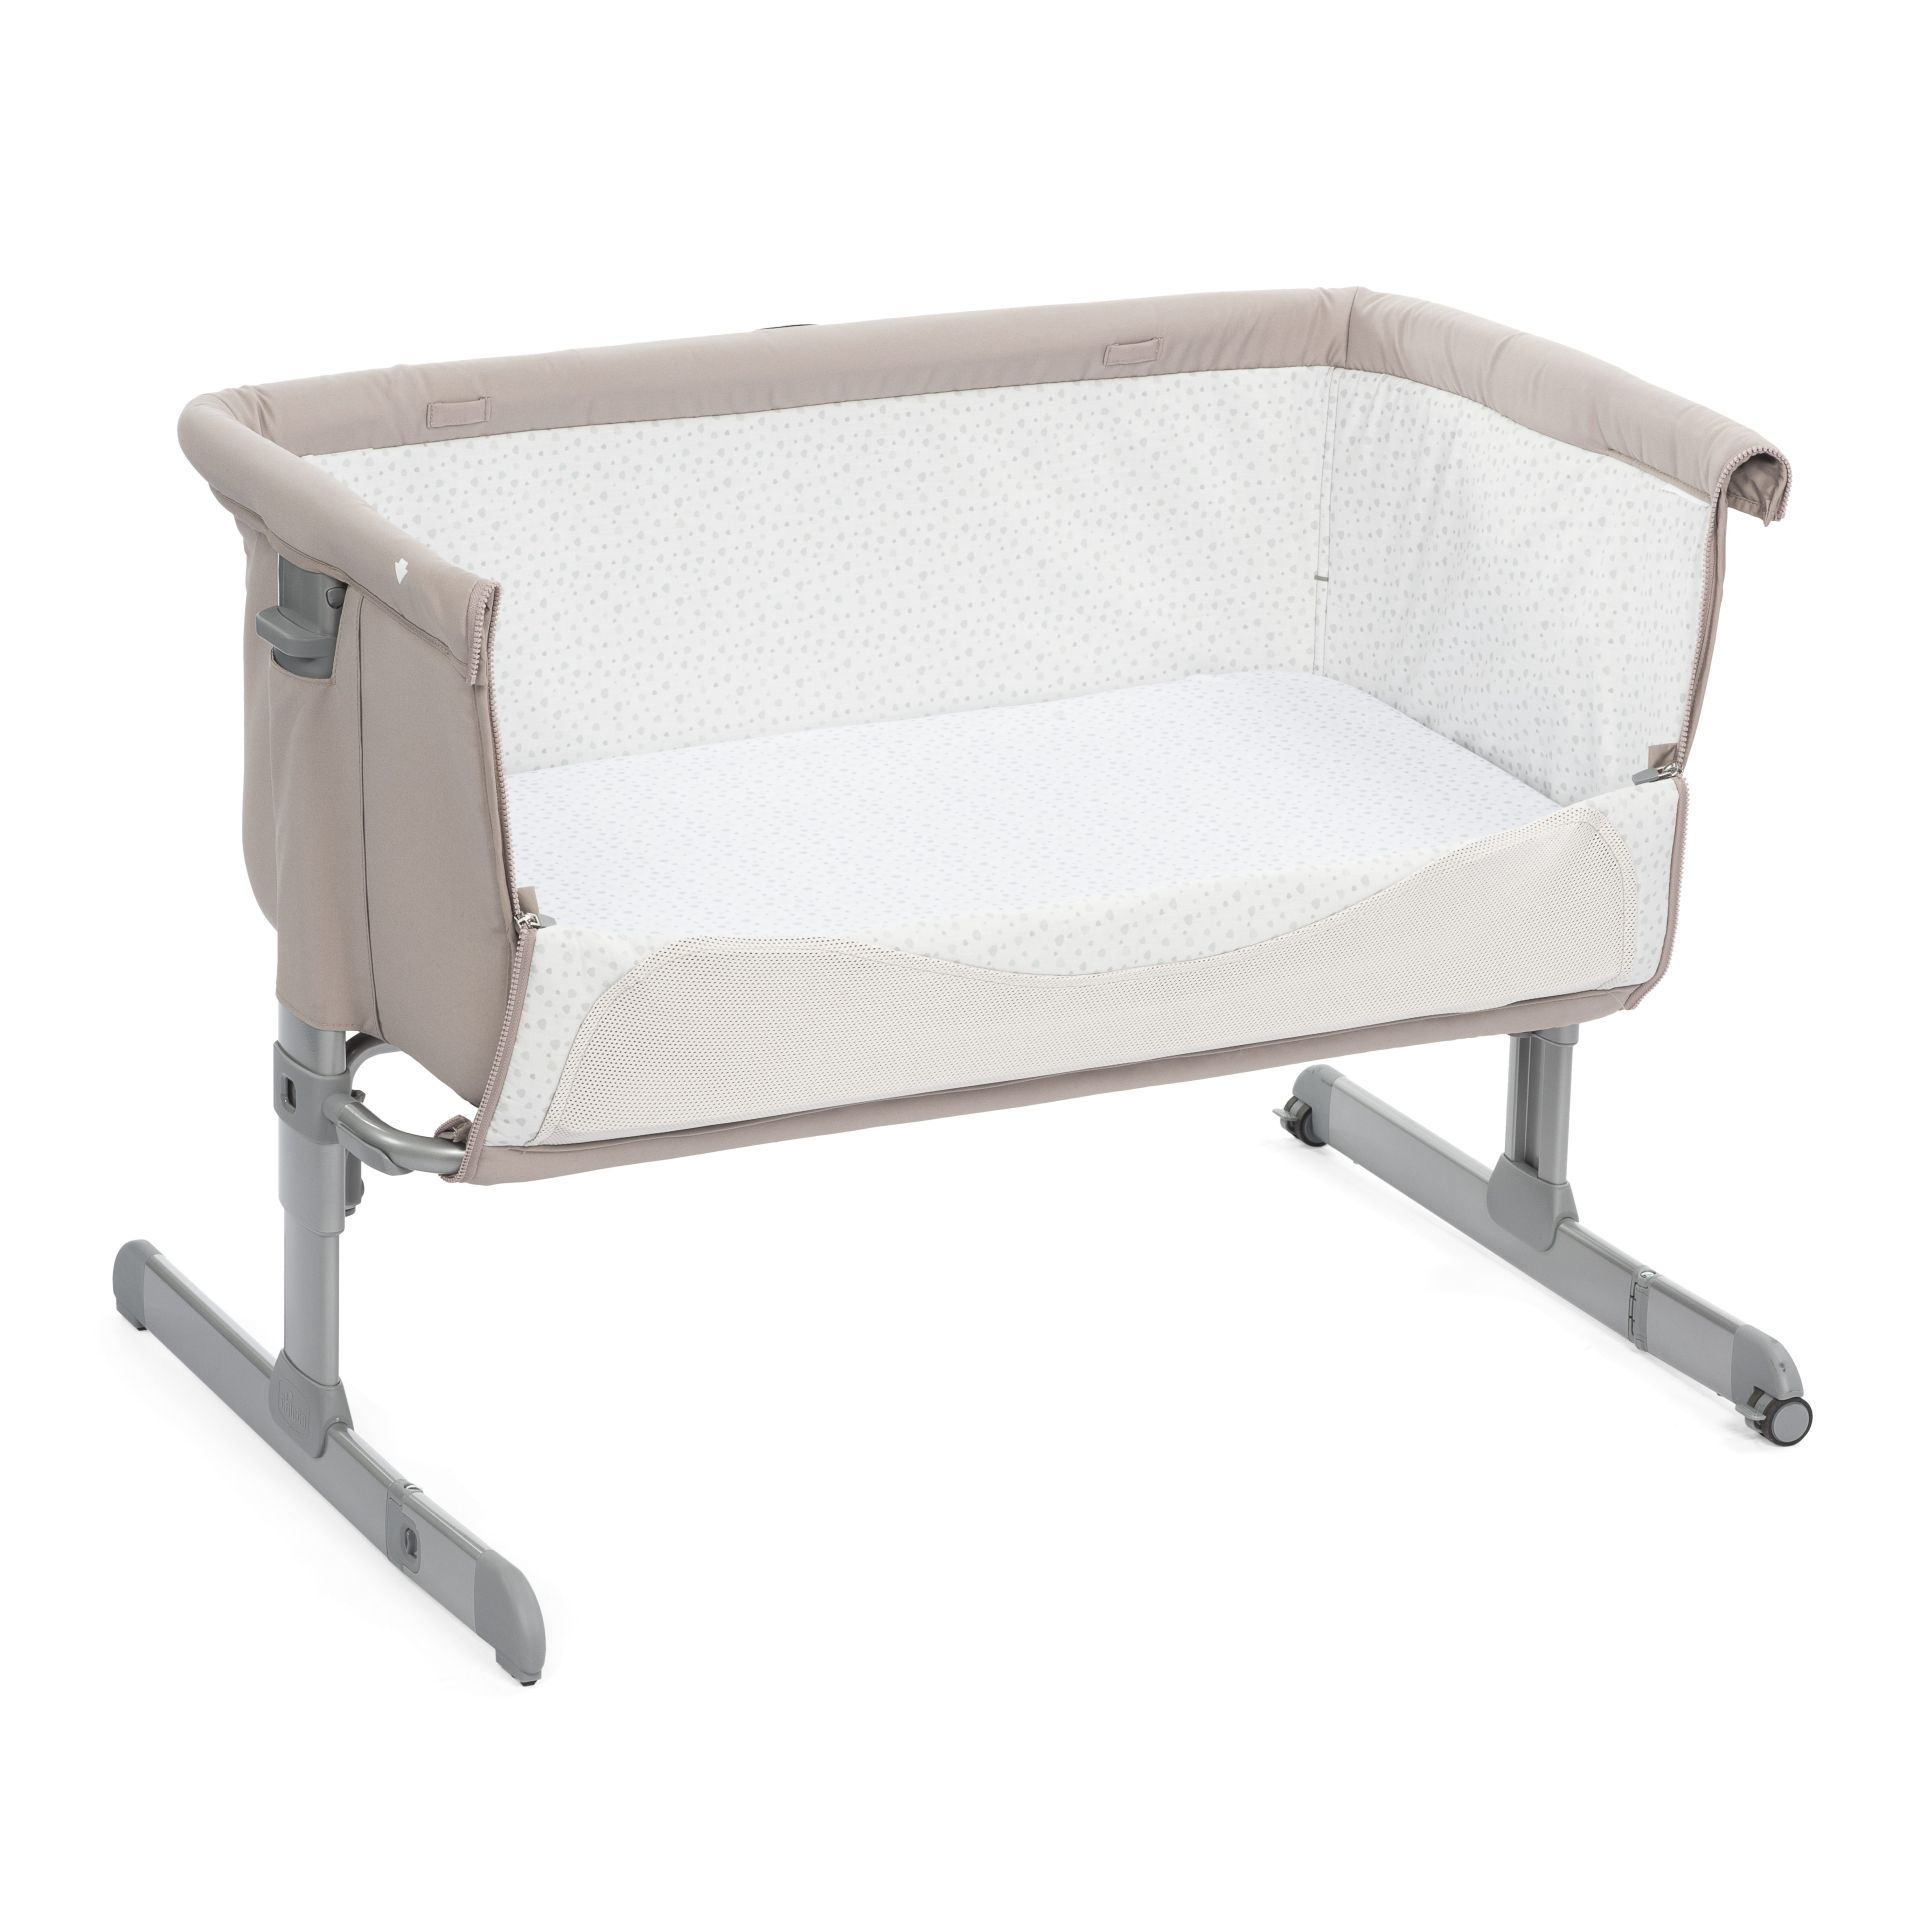 chicco co sleeper cot next2me 2018 chick to chick buy at. Black Bedroom Furniture Sets. Home Design Ideas